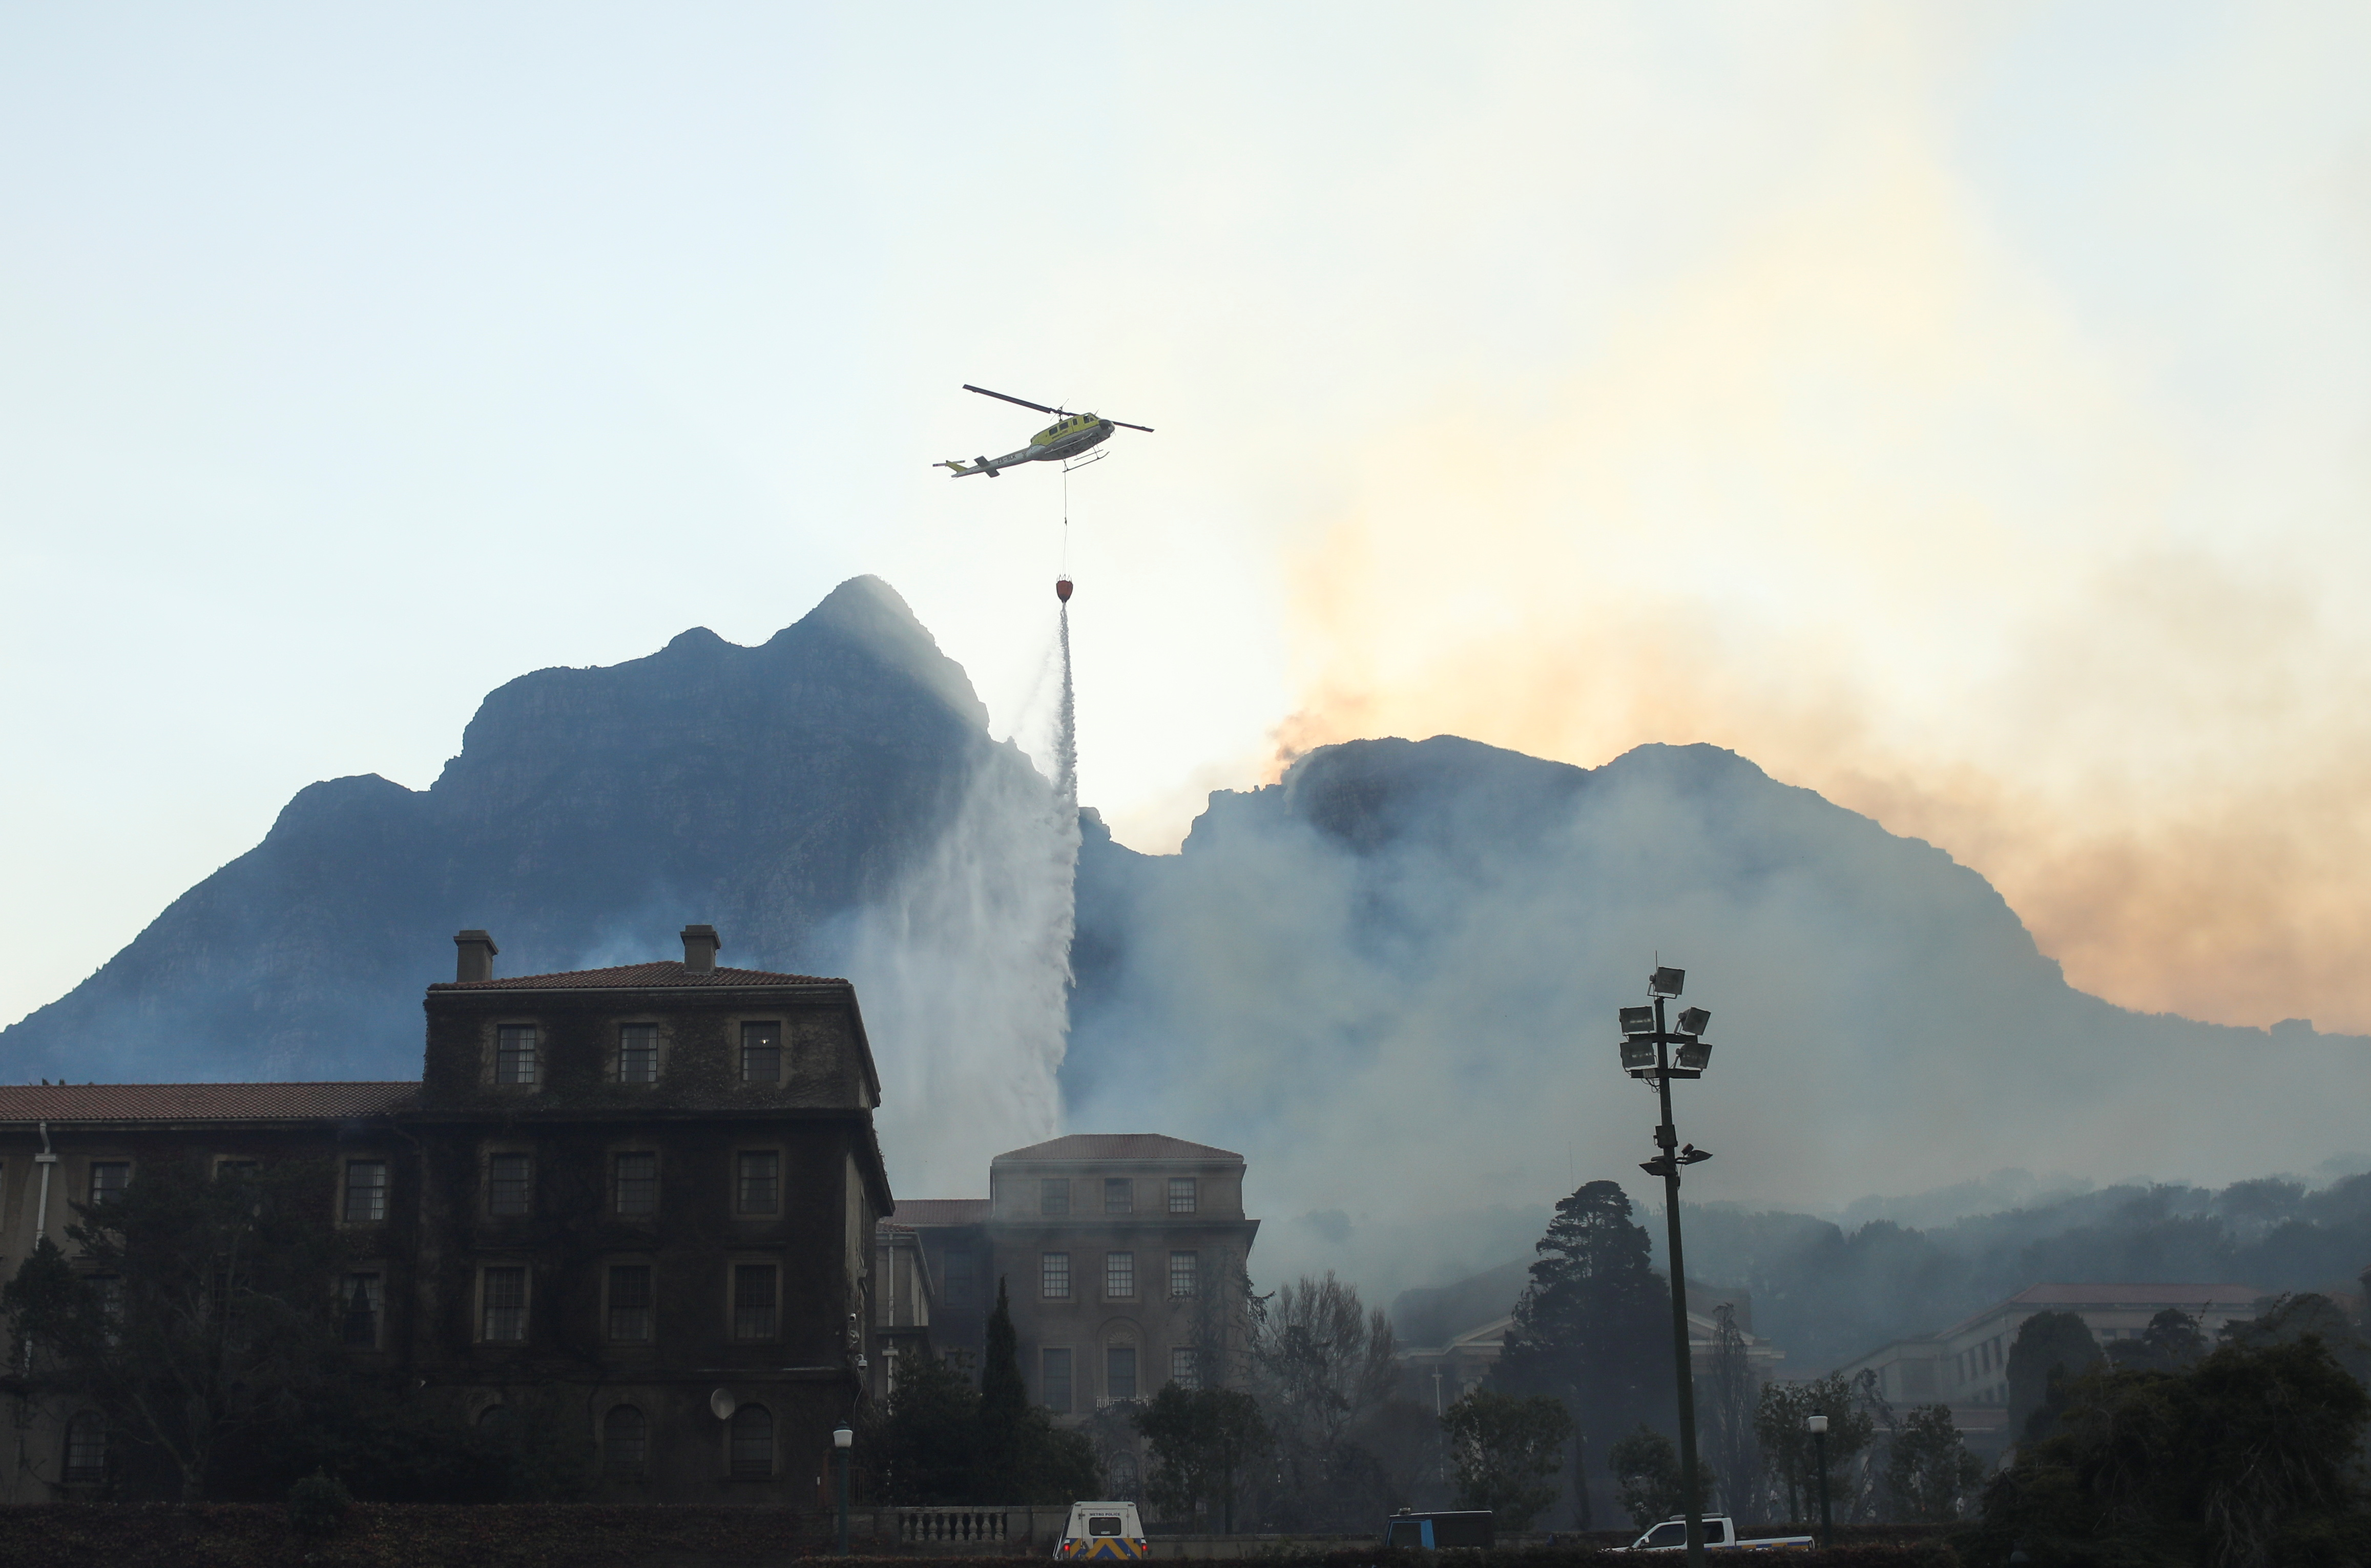 A helicopter drops water as the library at the University of Cape Town burns after a bushfire broke out on the slopes of Table Mountain in Cape Town on April 18.